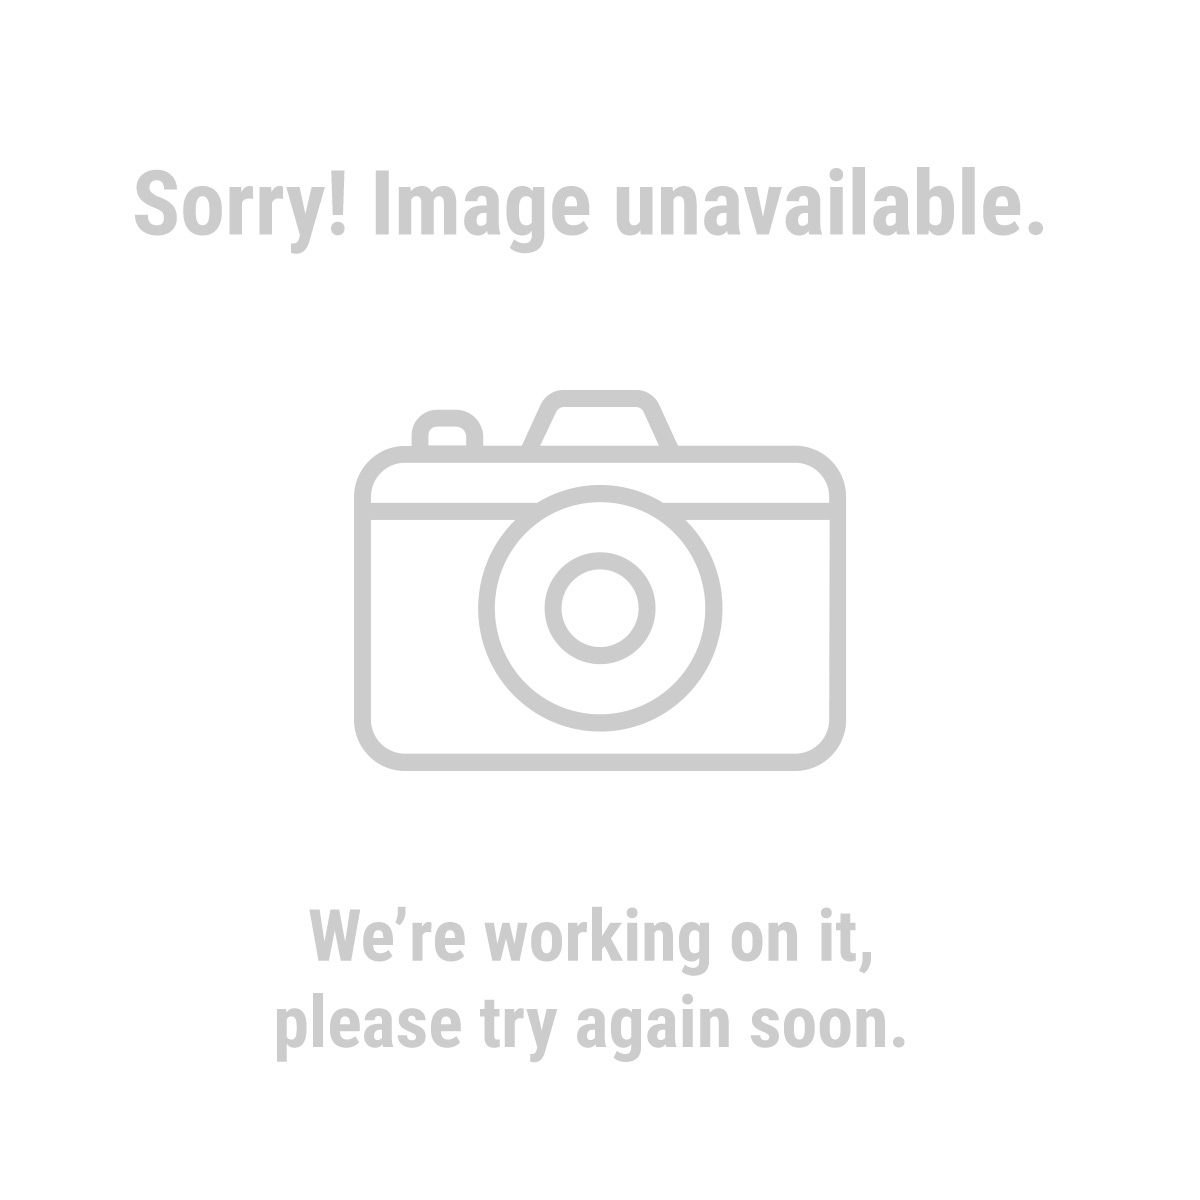 badland winch wiring diagram wiring diagrams badland 12000 winch wiring diagram badlands